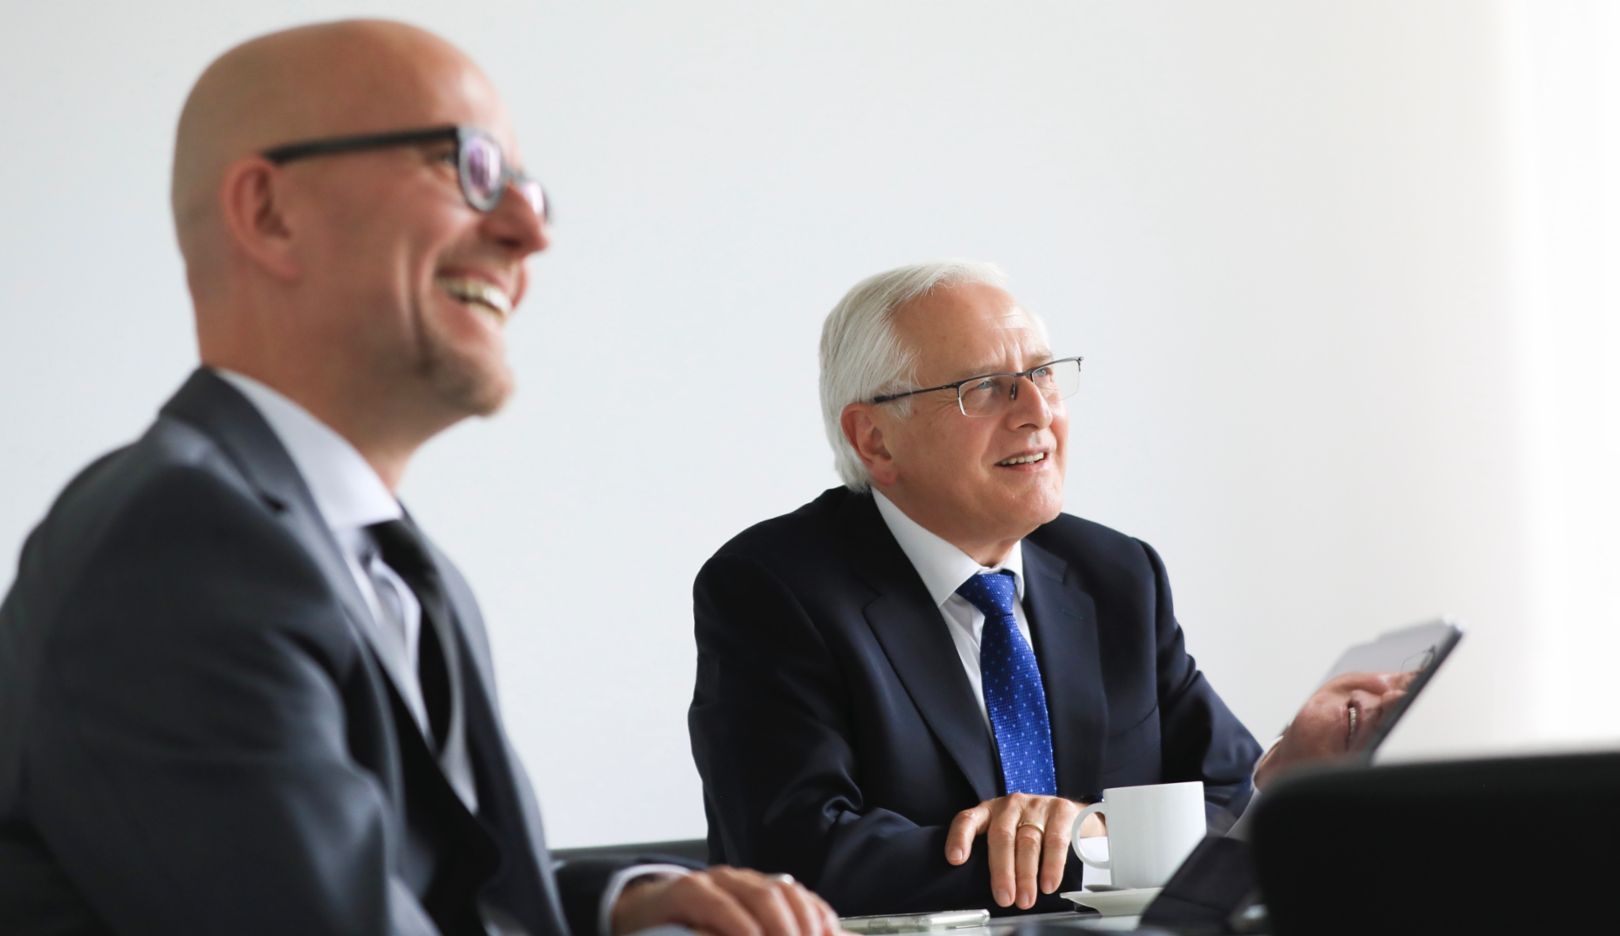 Olaf Bollmann, Head of the Corona Task Force, Uwe-Karsten Städter, Member of the Executive Board for Procurement, l-r, 2020, Porsche AG